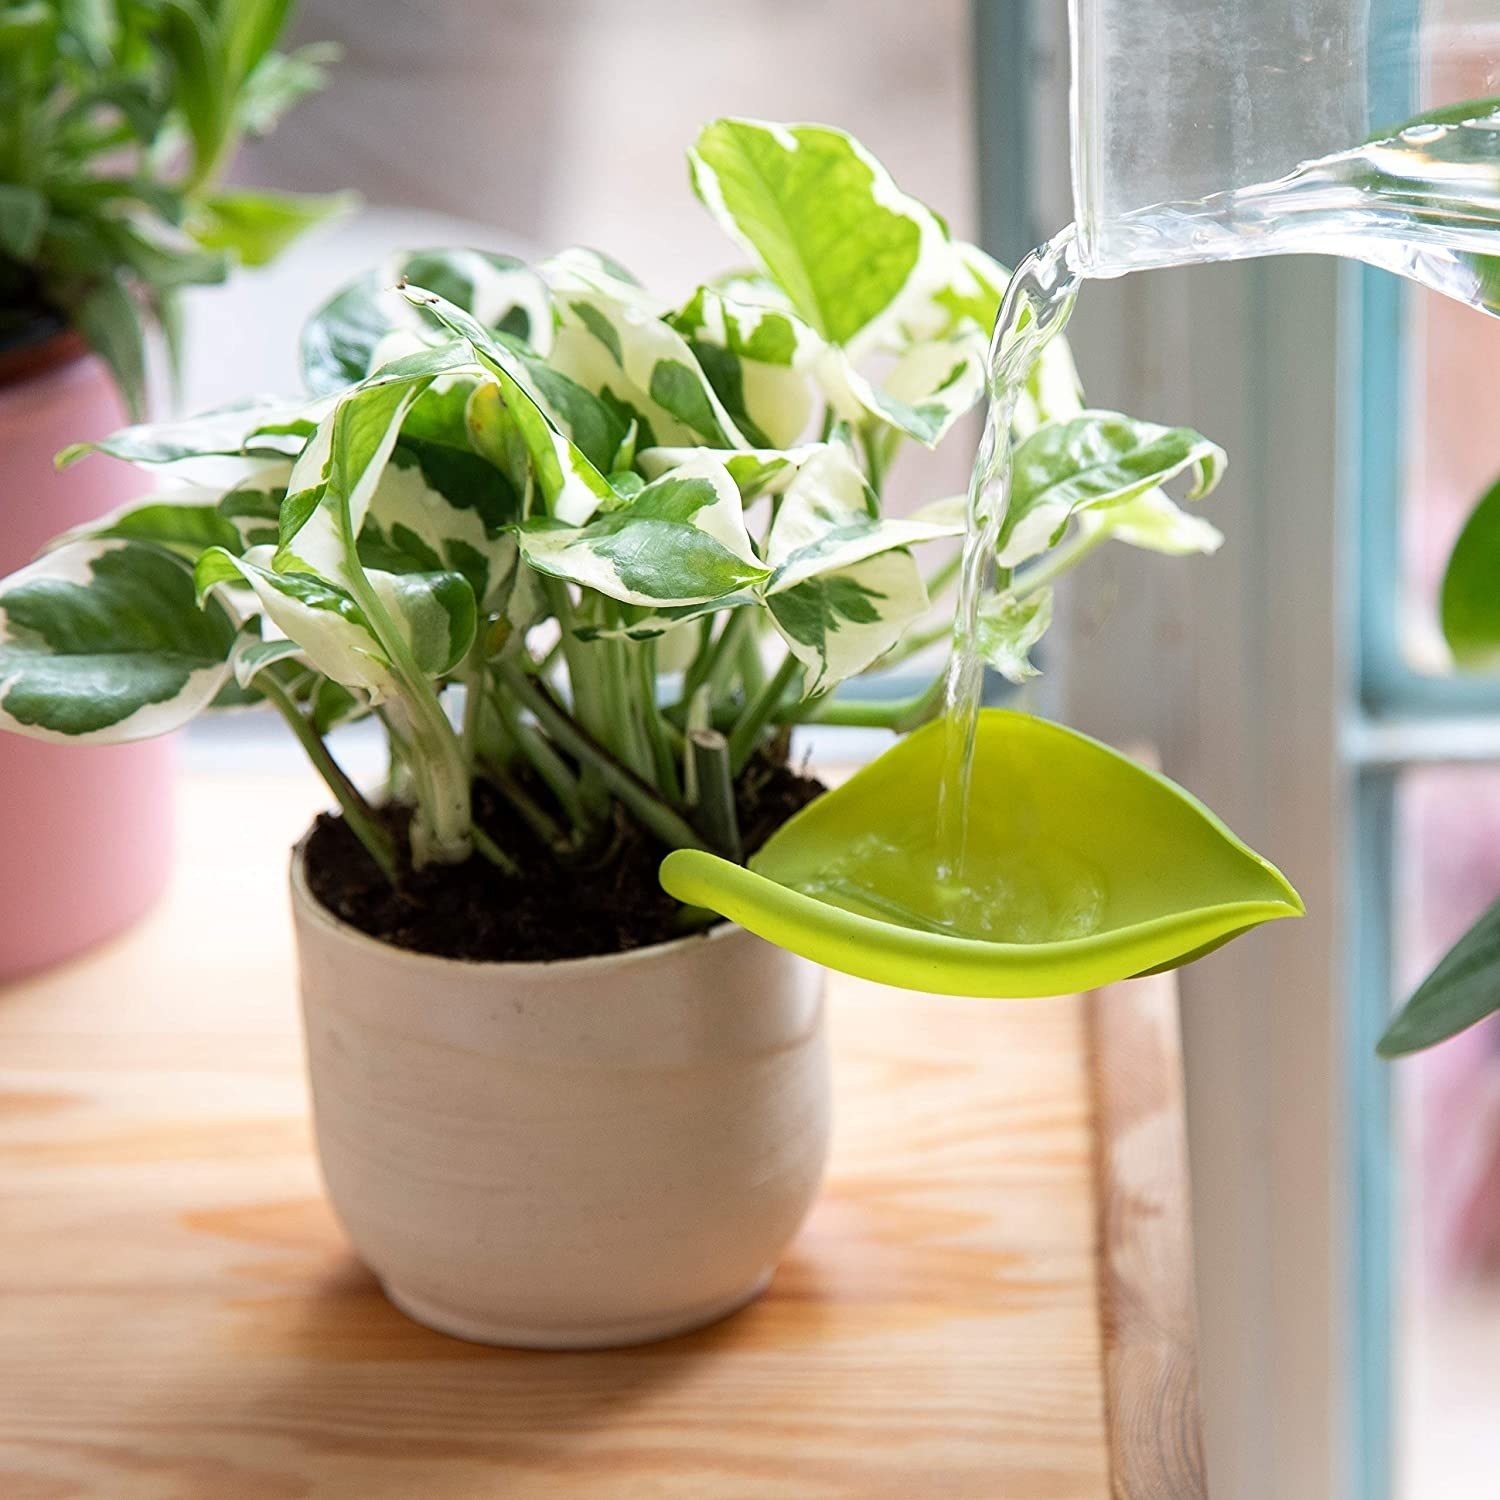 a leaf-shaped funnel that connects to side of pot